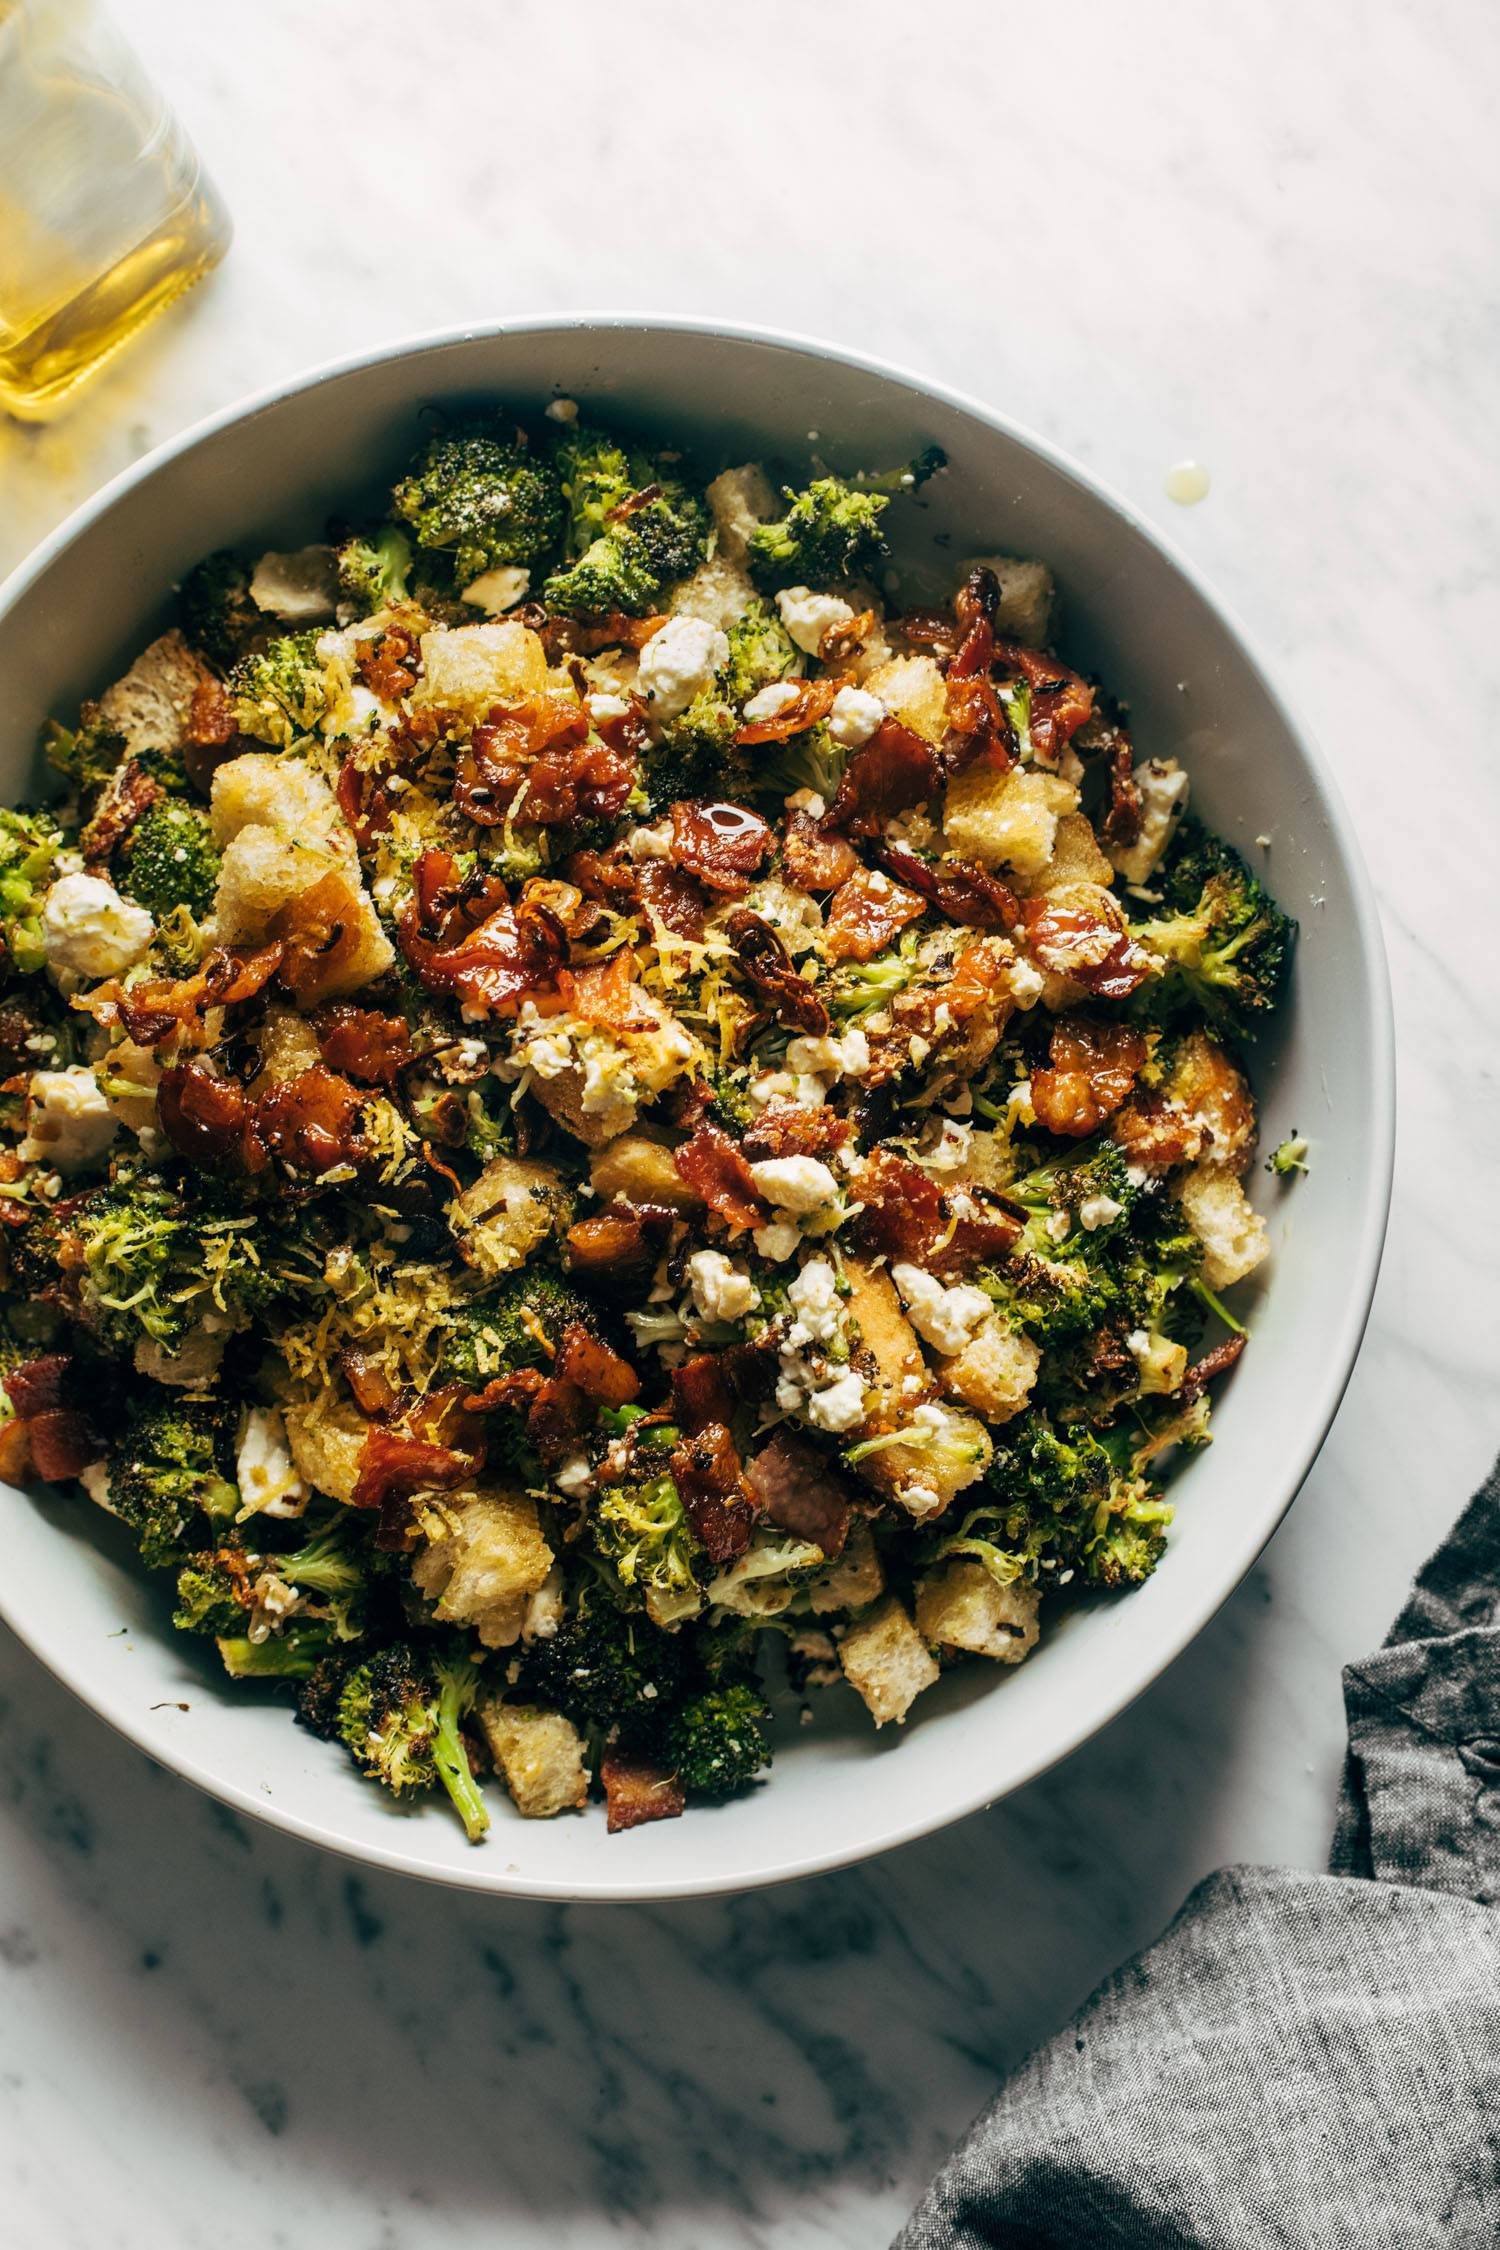 Roasted broccoli salad in a large bowl.